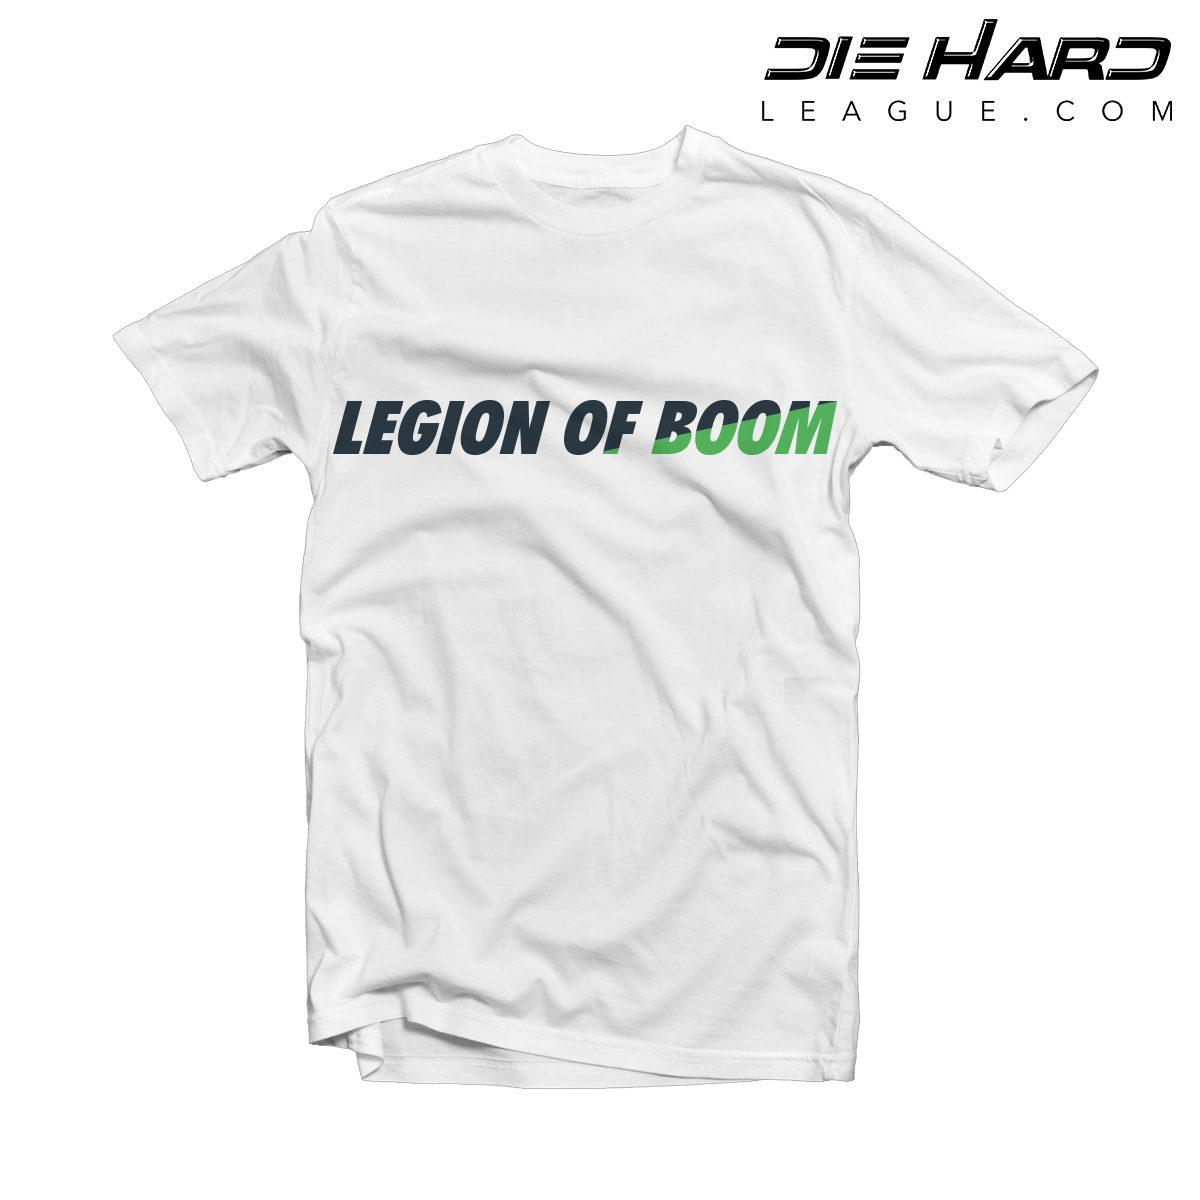 a14d1e97b36 Seattle Seahawks Shirts - Legion of Boom White Tee  Best Price